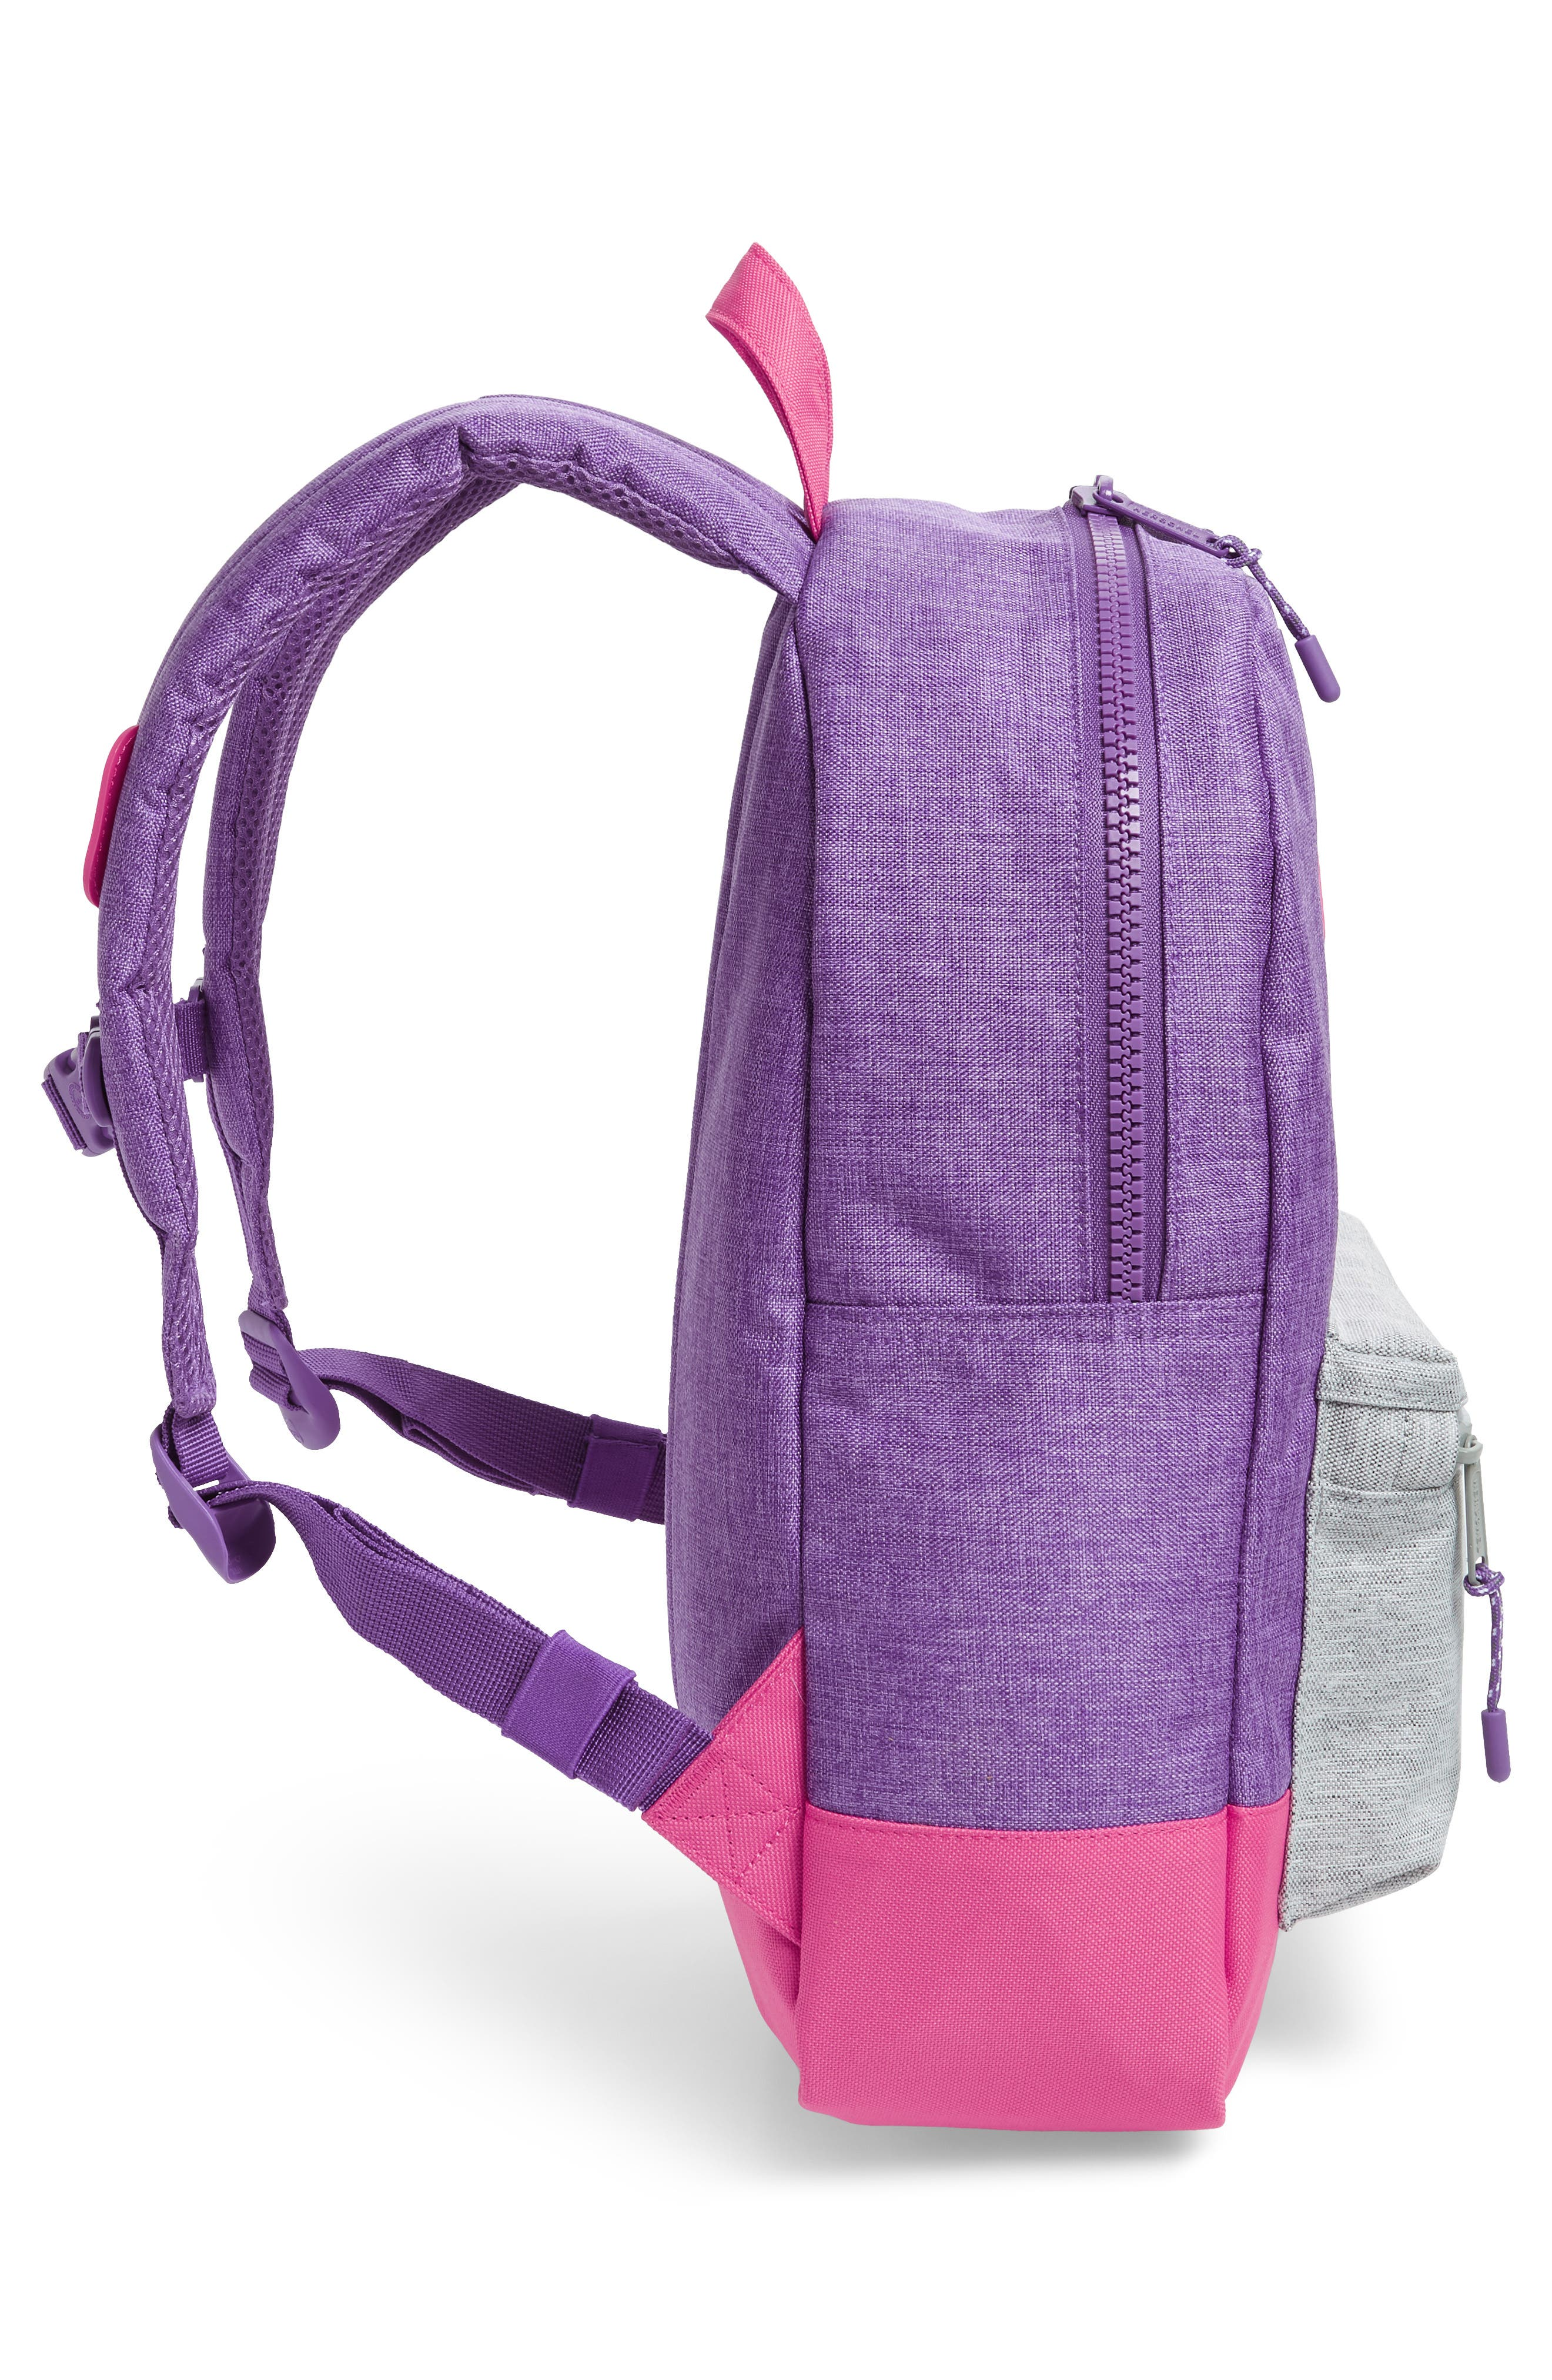 Heritage Backpack,                             Alternate thumbnail 4, color,                             515